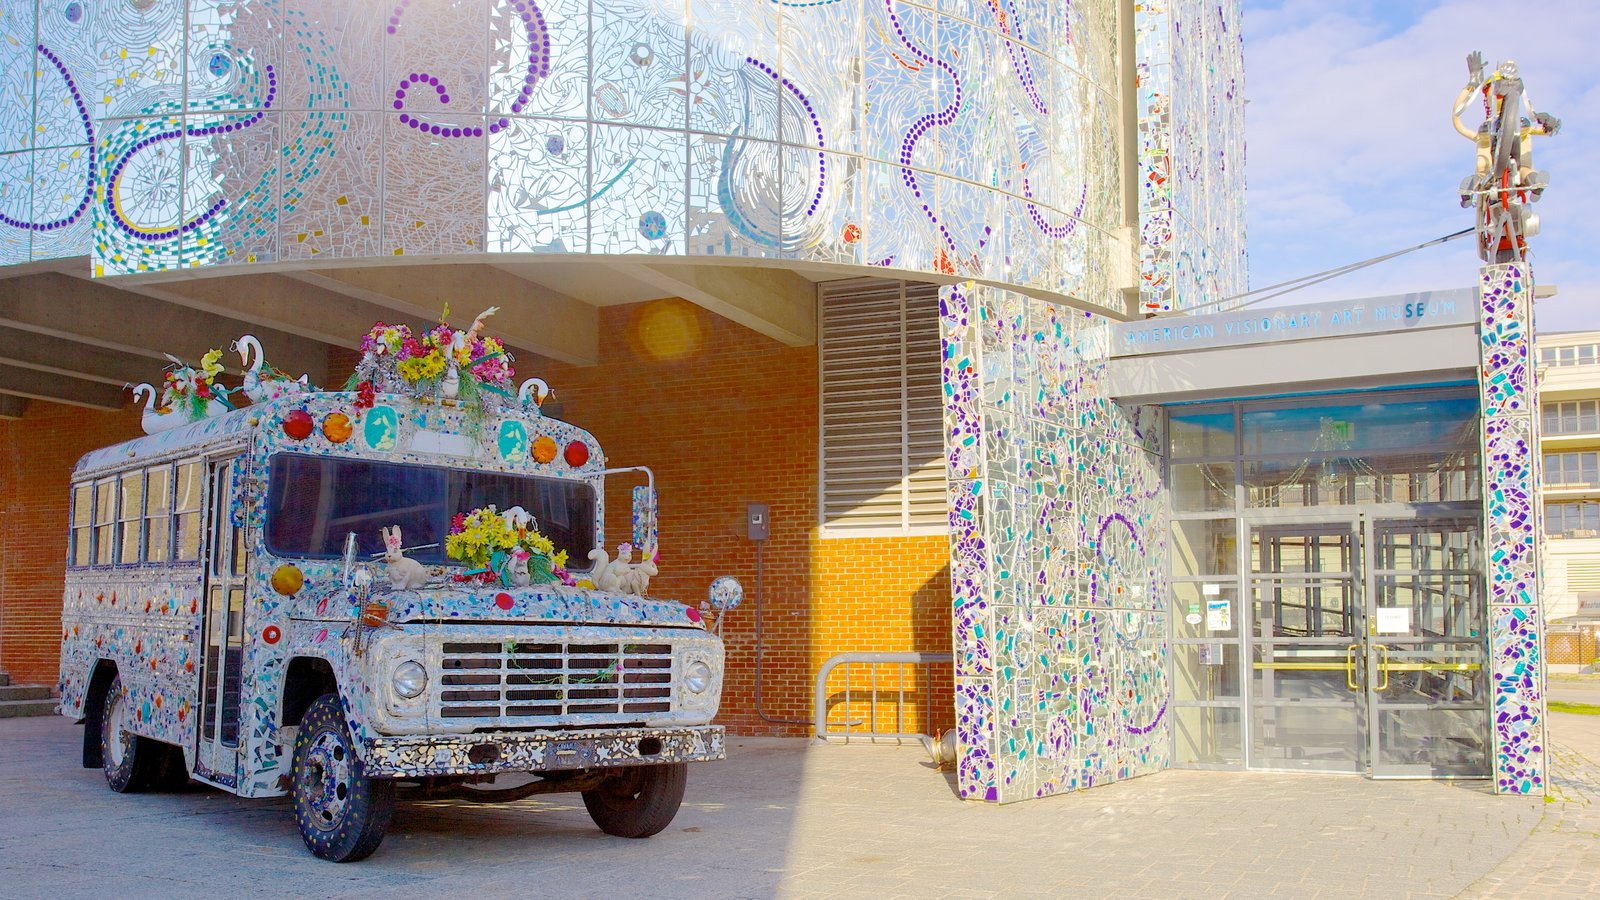 American Visionary Art Museum featuring art